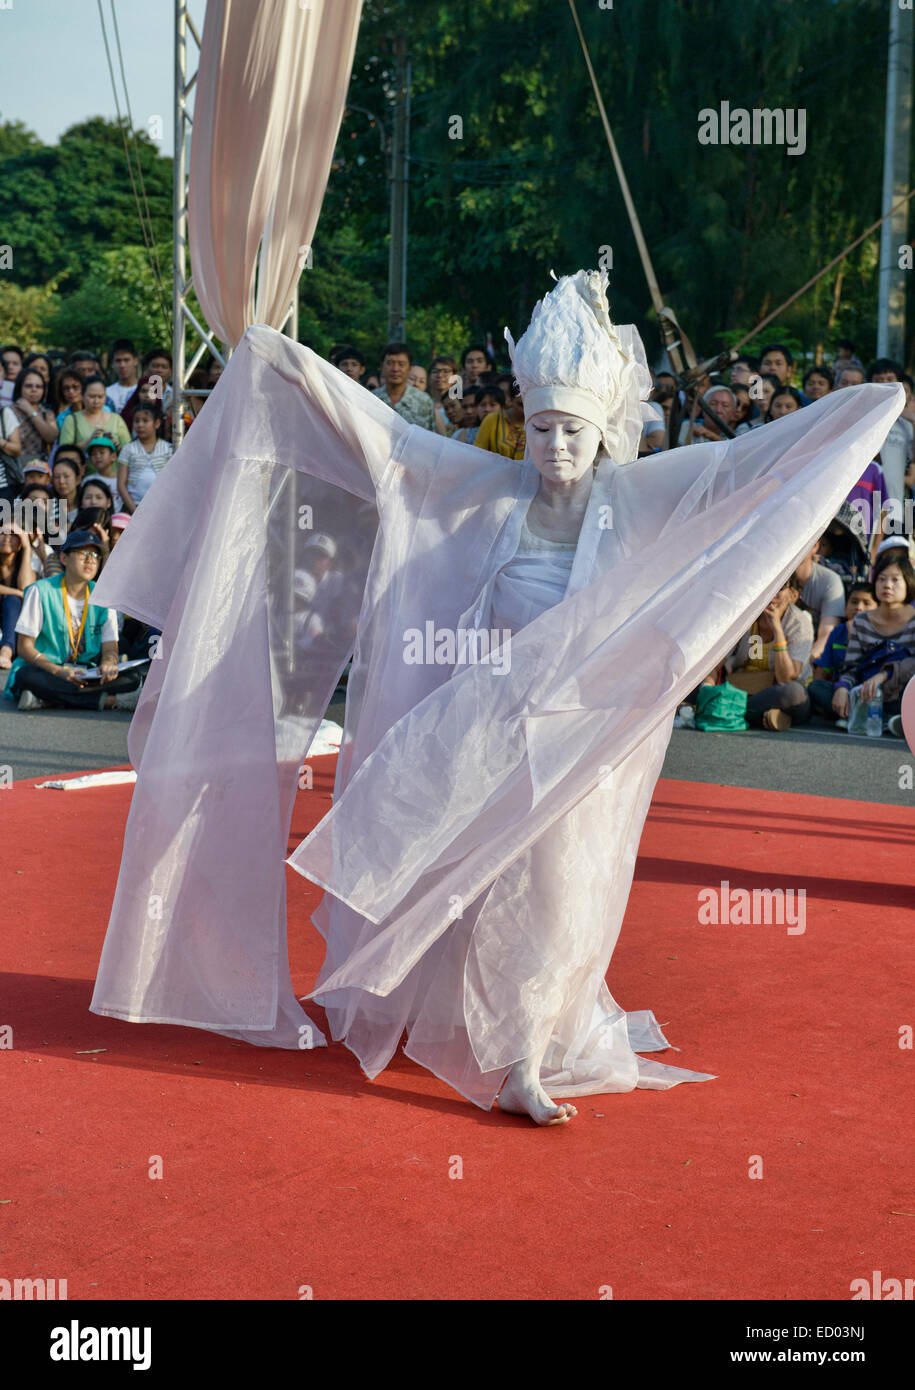 Avant garde butoh artist performing at the Street Show, Bangkok, Thailand - Stock Image